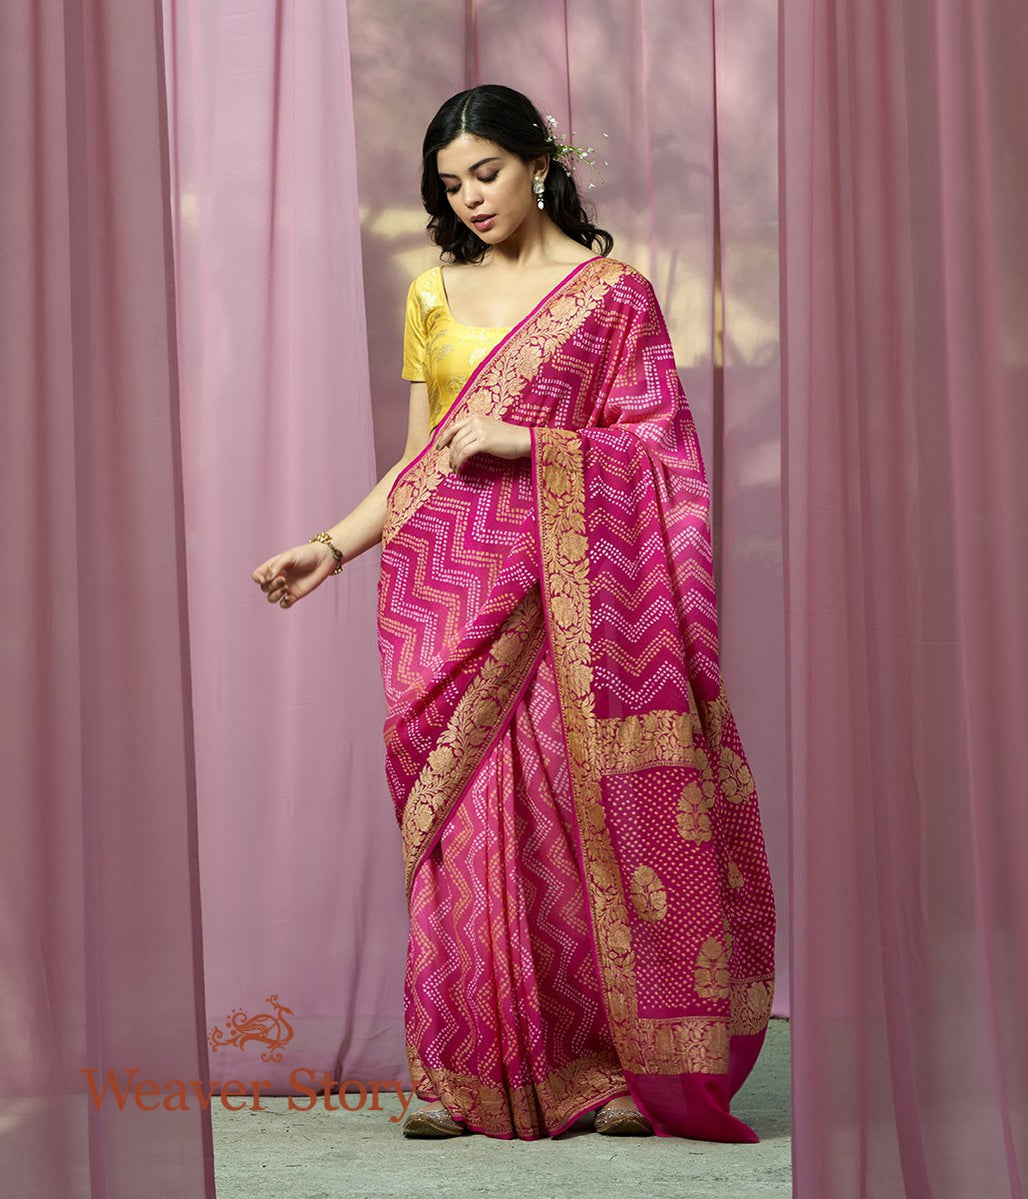 Handwoven Pink Shaded Banarasi Bandhej Saree